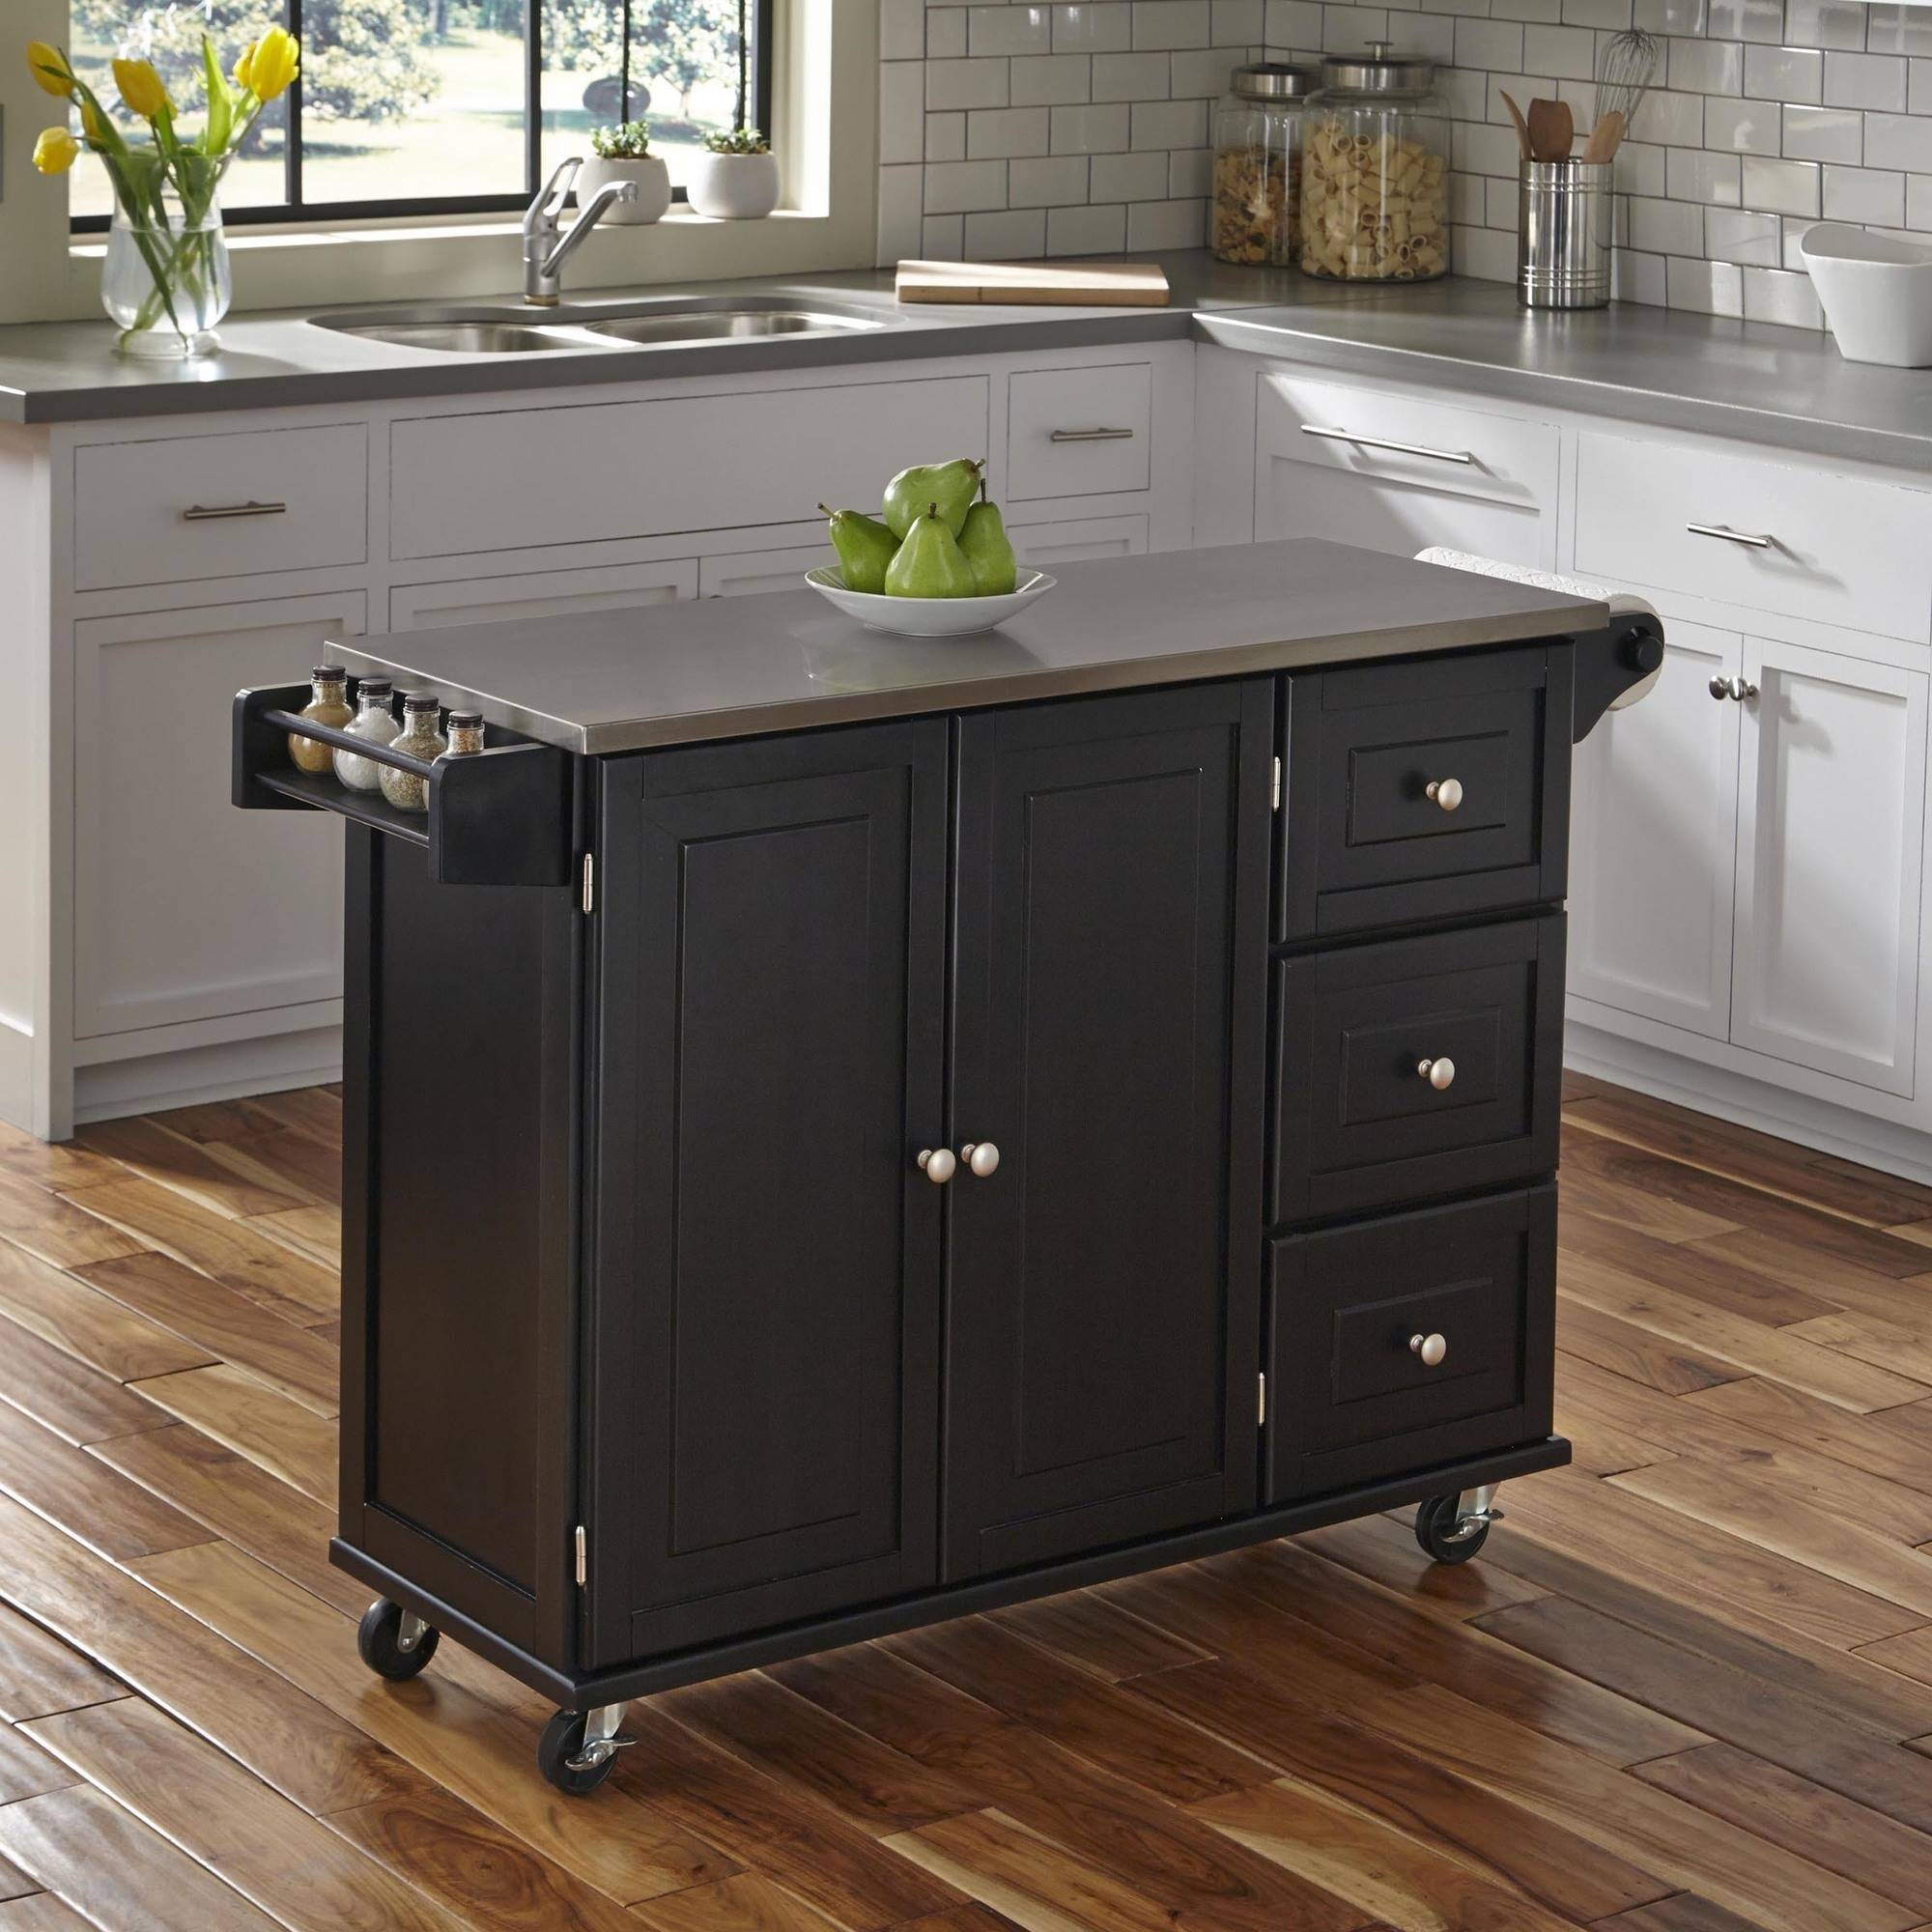 stainless steel kitchen cart stainless steel top kitchen liberty kitchen cart with stainless steel top black